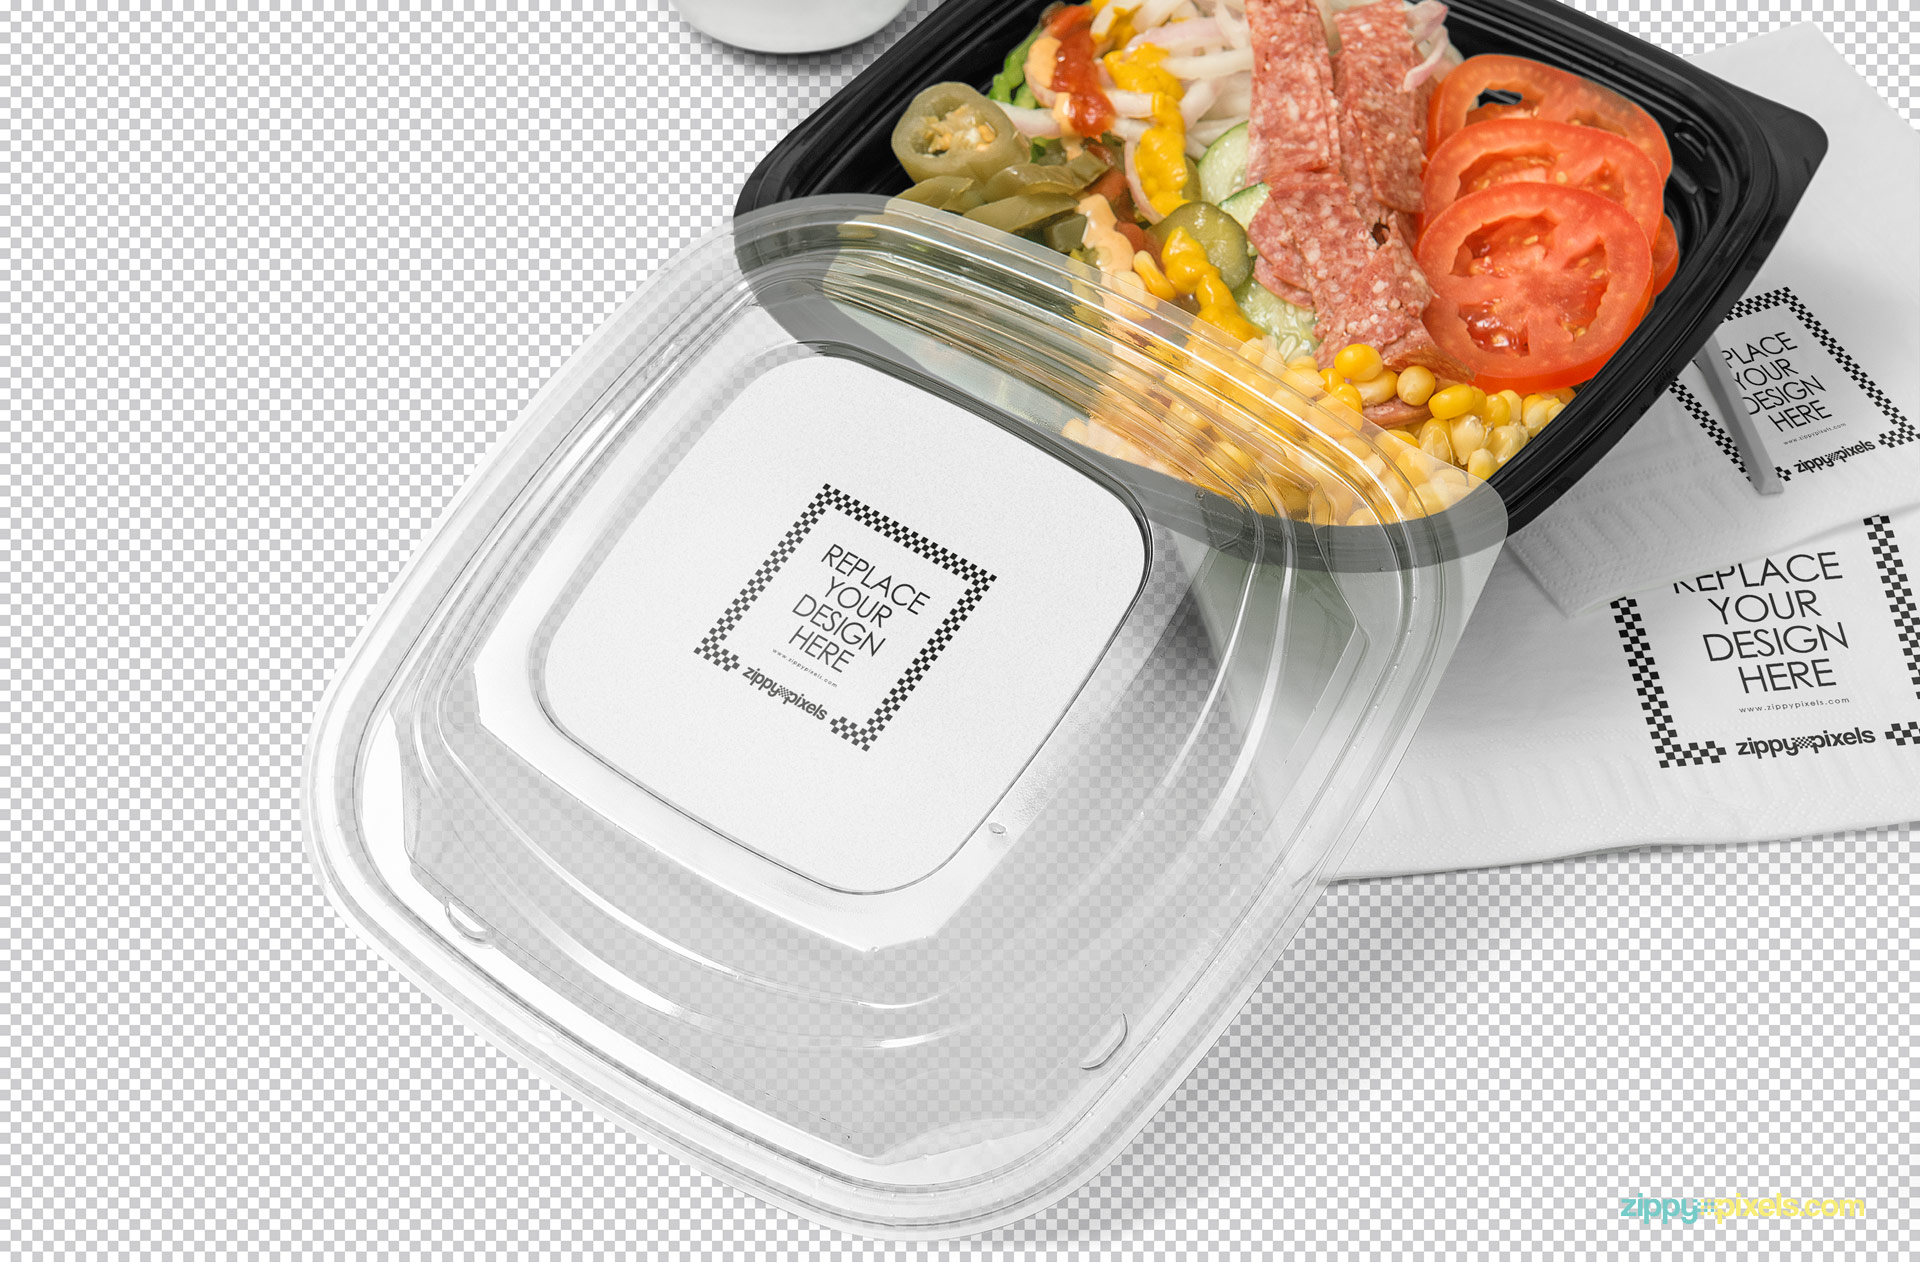 You can edit this PSD of food packaging mockup using Photoshop.